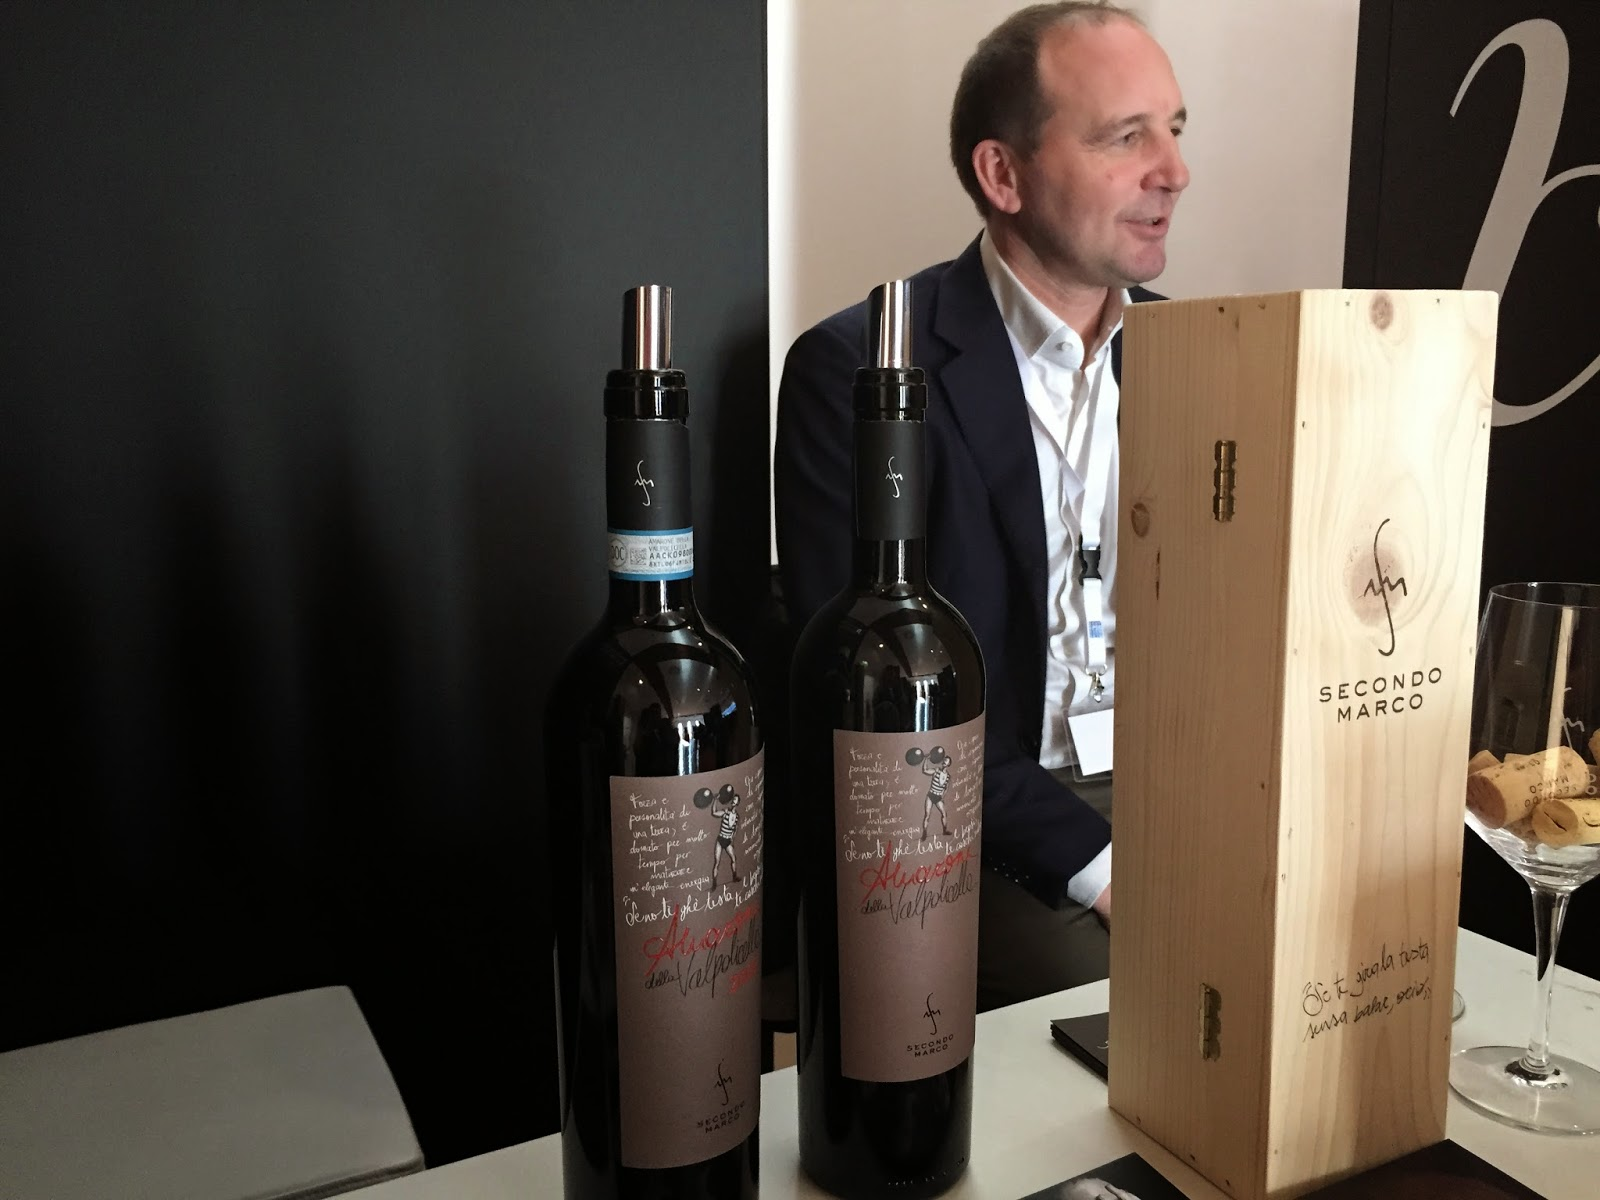 Winemaker Marco Speri of Secondo Marco